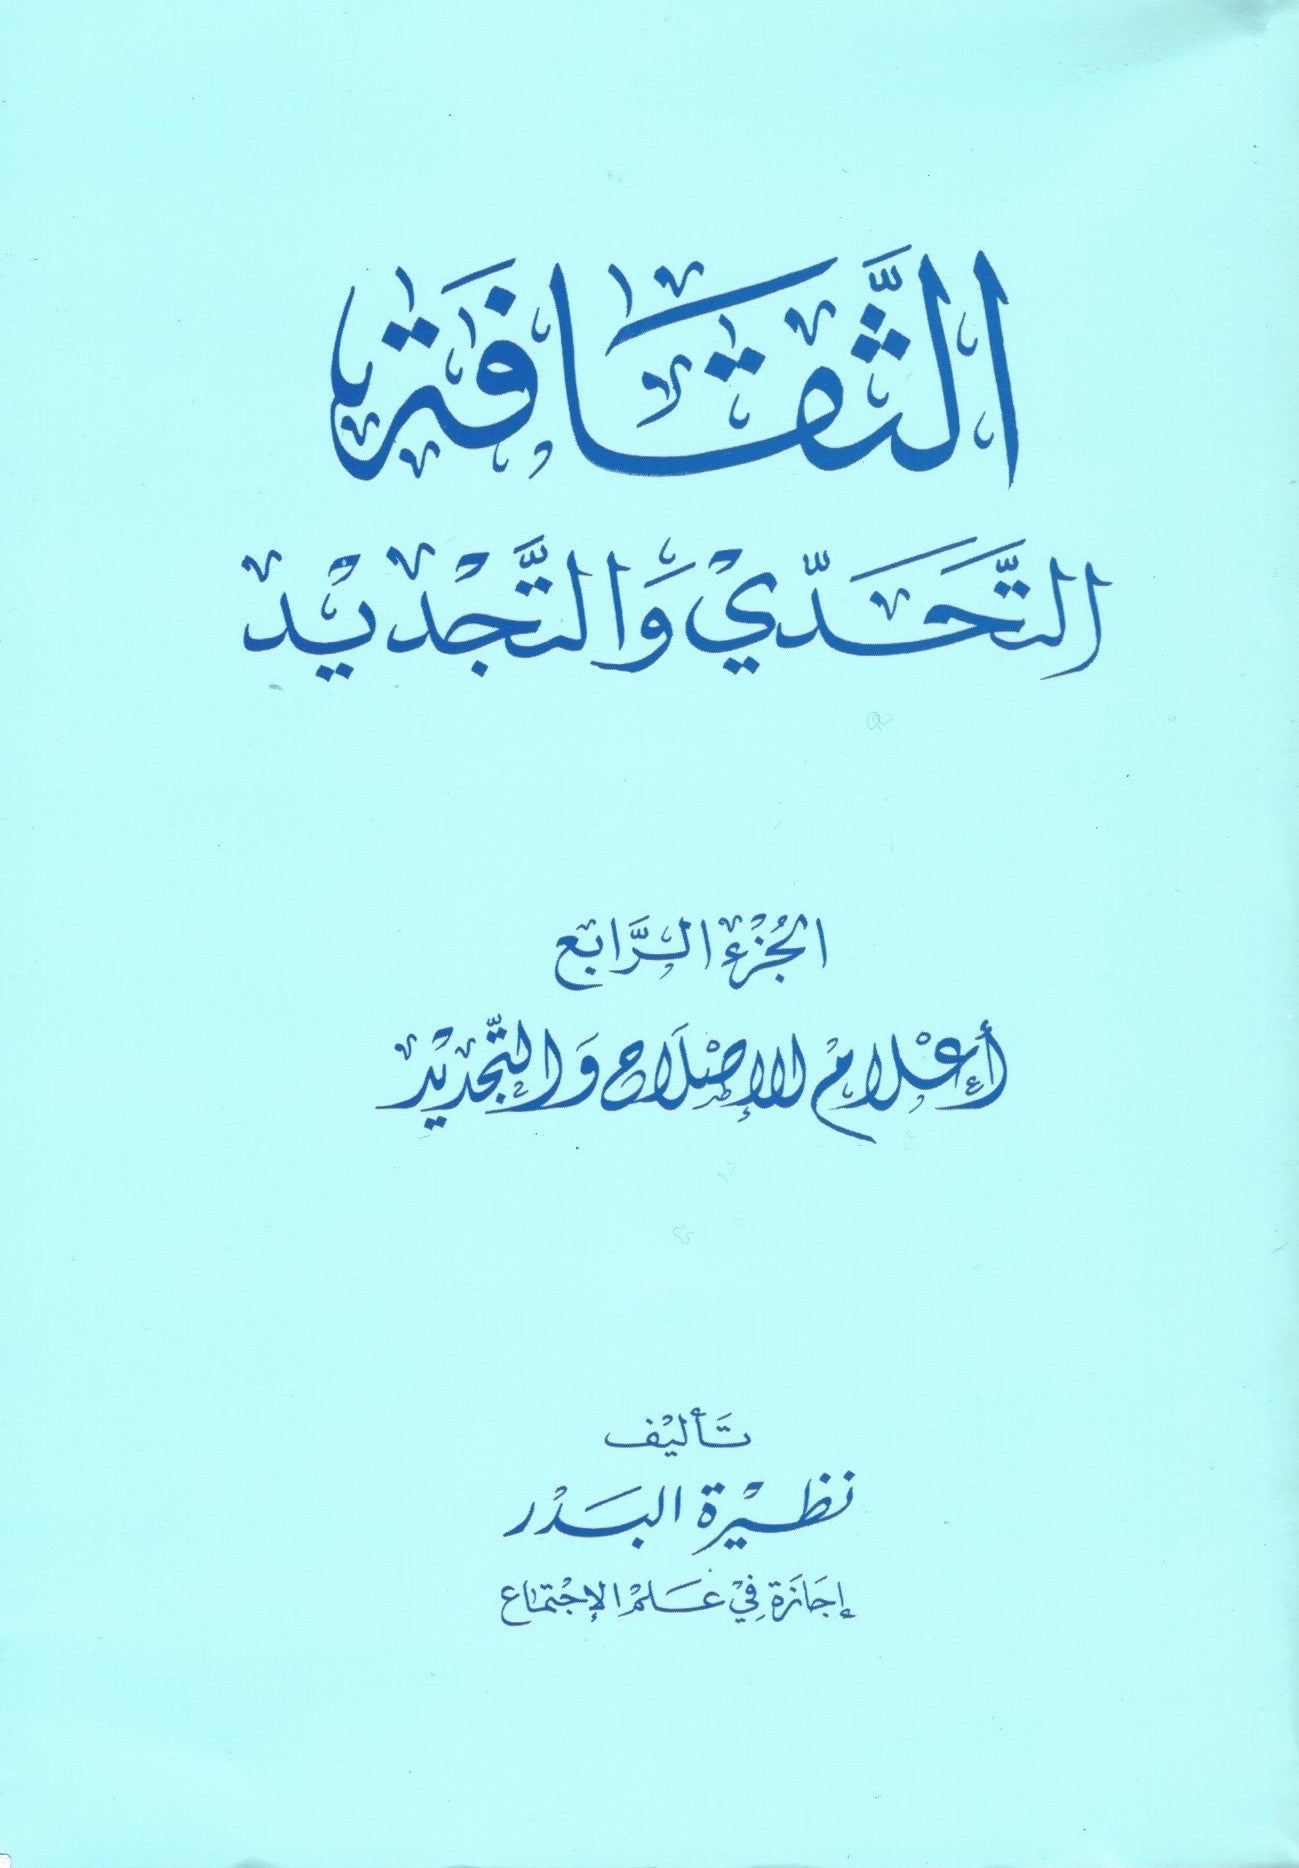 الثقافة: التحدّي والتجديد (Al Thaqafi - 4 volumes) , Shaam - Daybreak Press Global Bookshop, Daybreak Press Global Bookshop  - 4